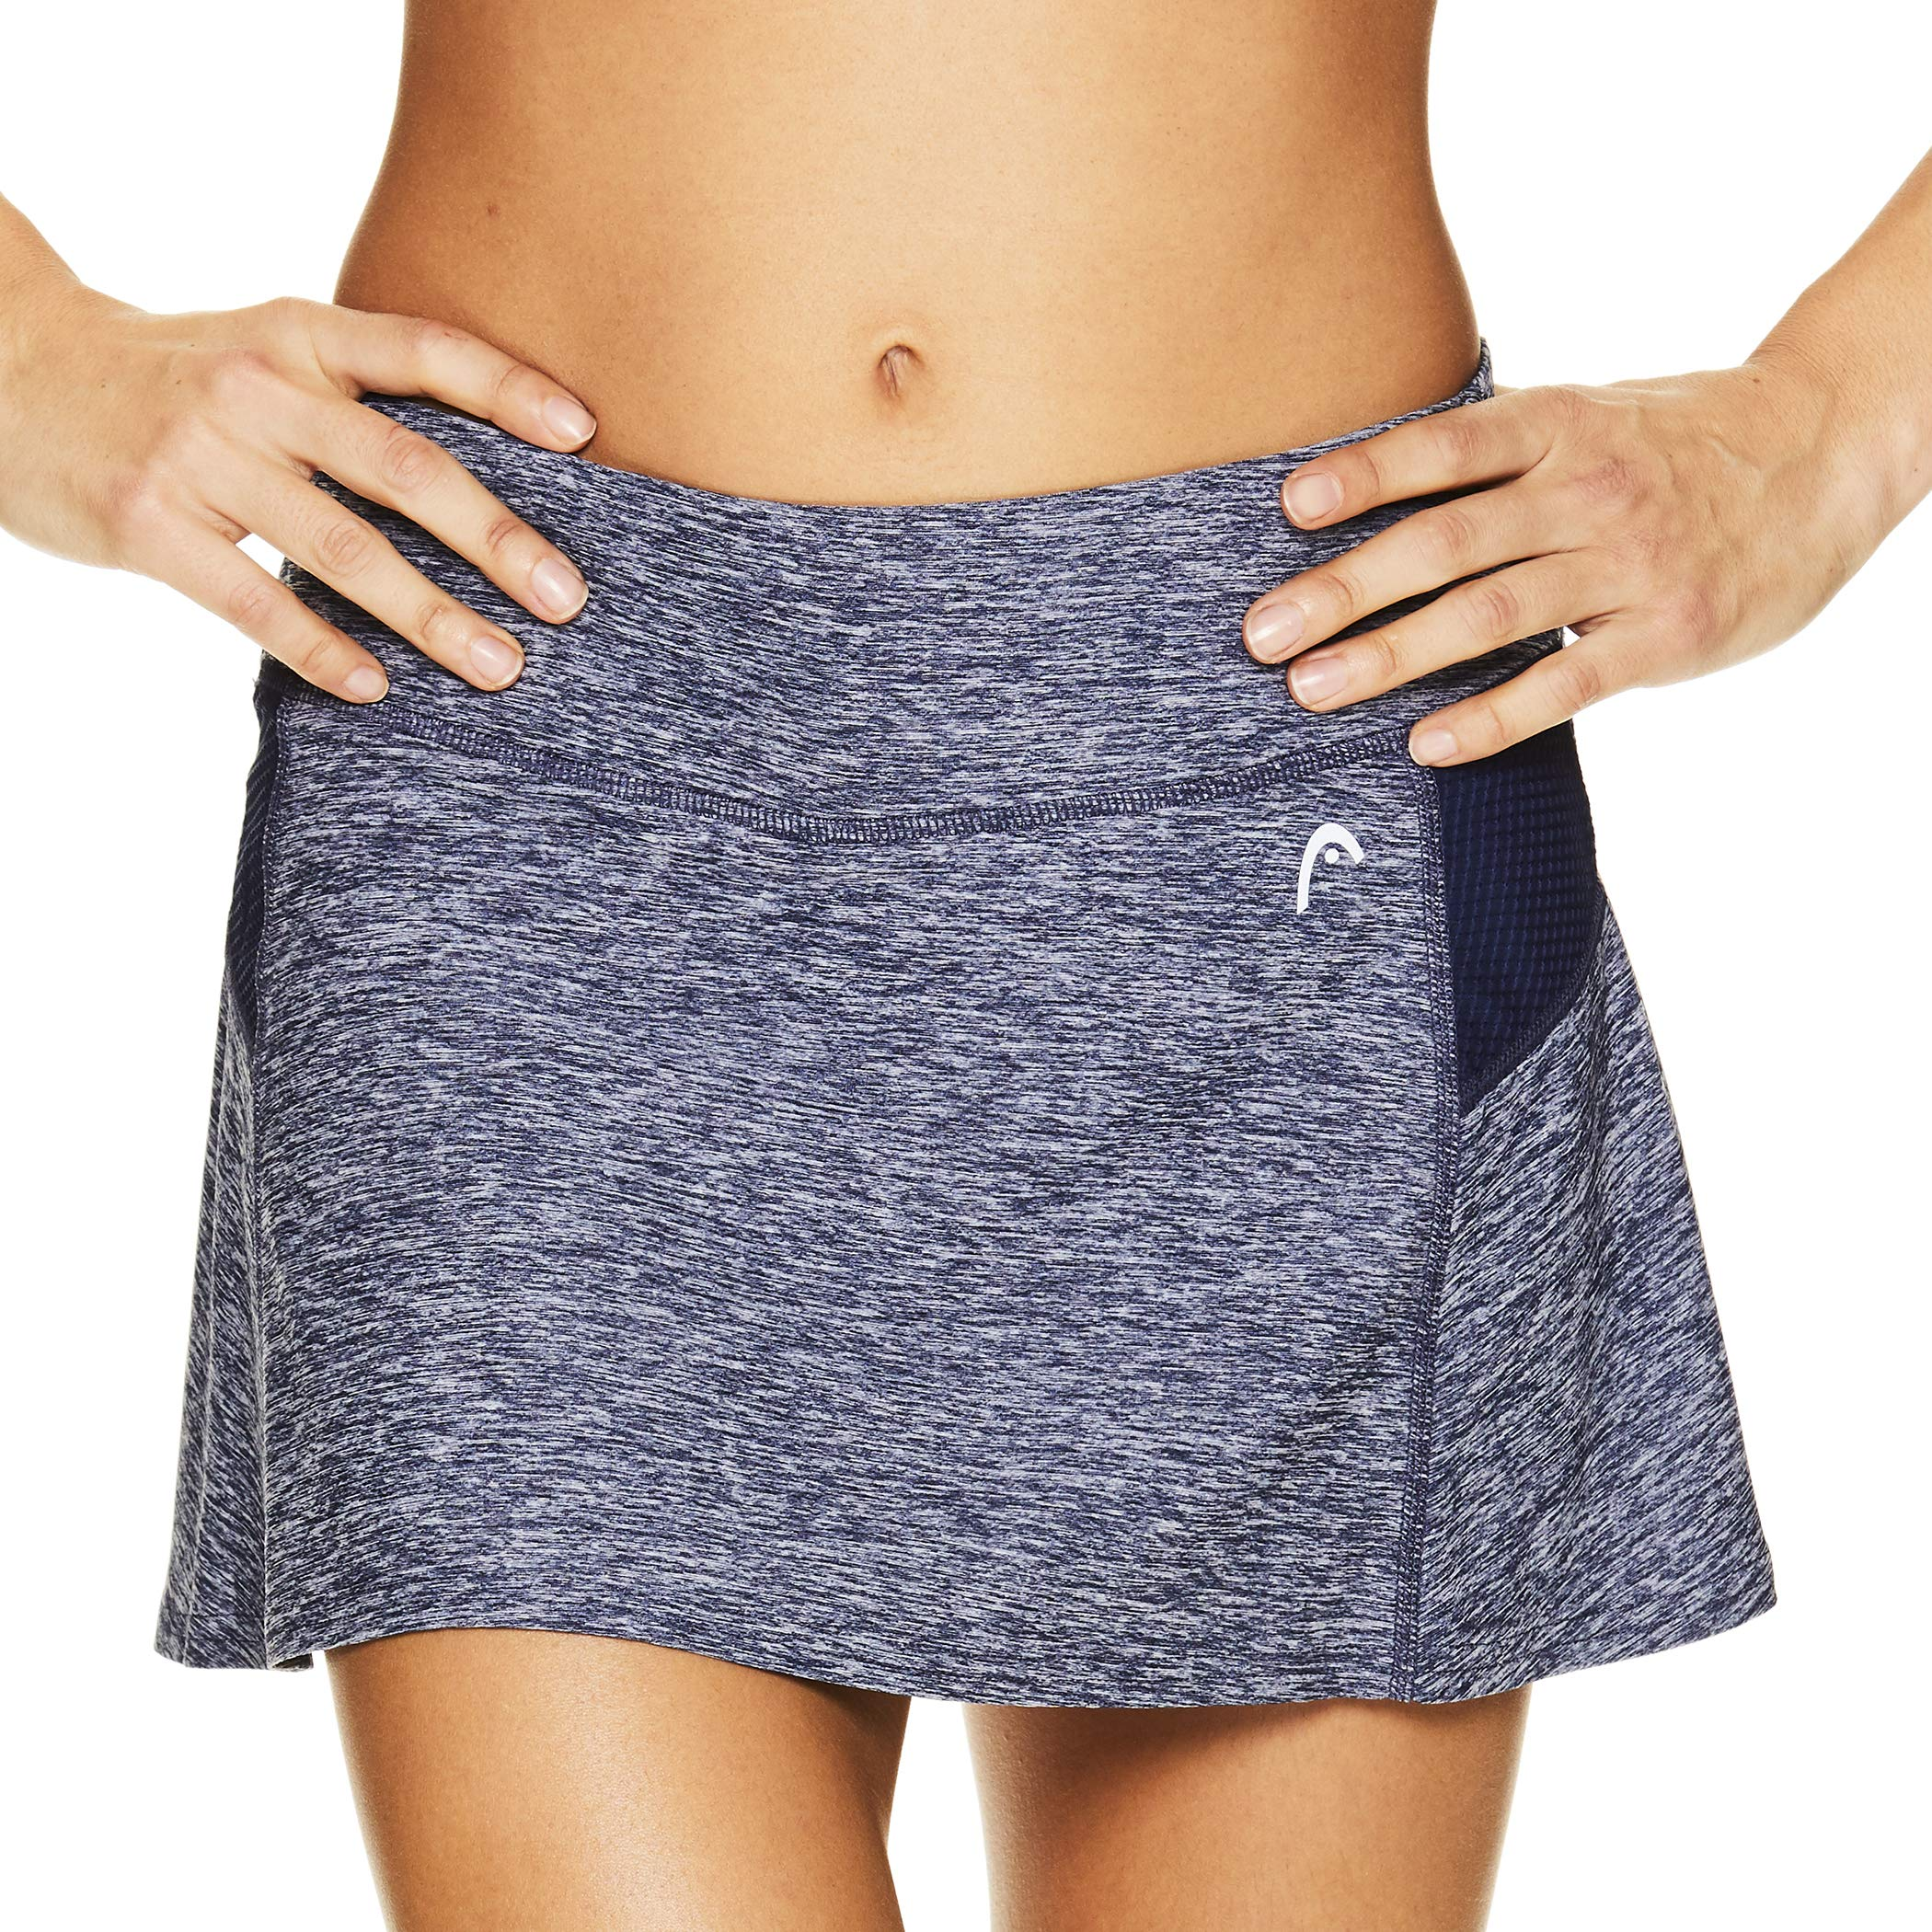 HEAD Women's Athletic Tennis Skort - Performance Training & Running Skirt - Fresh Mesh Medieval Blue Heather, X-Small